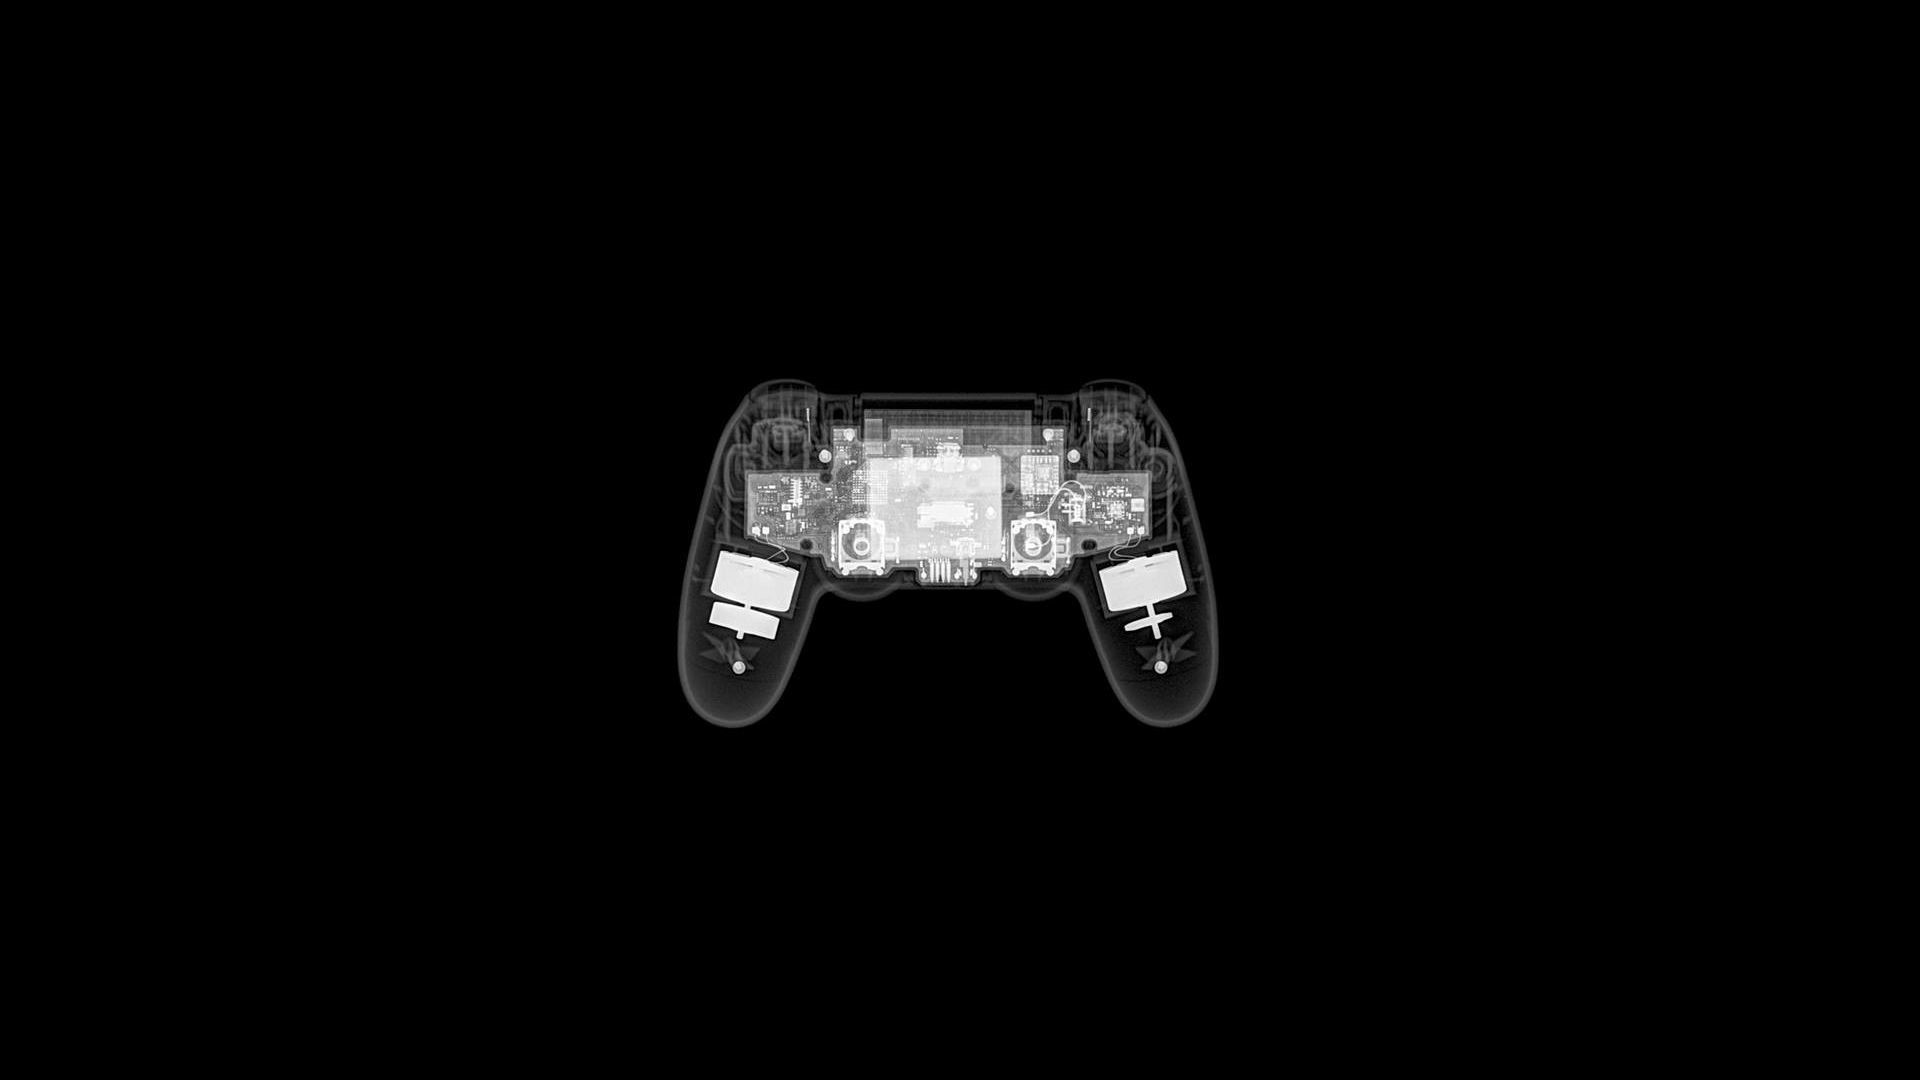 Res: 1920x1080, My brother took an X-ray of a ps3 controller. | Rebrn.com